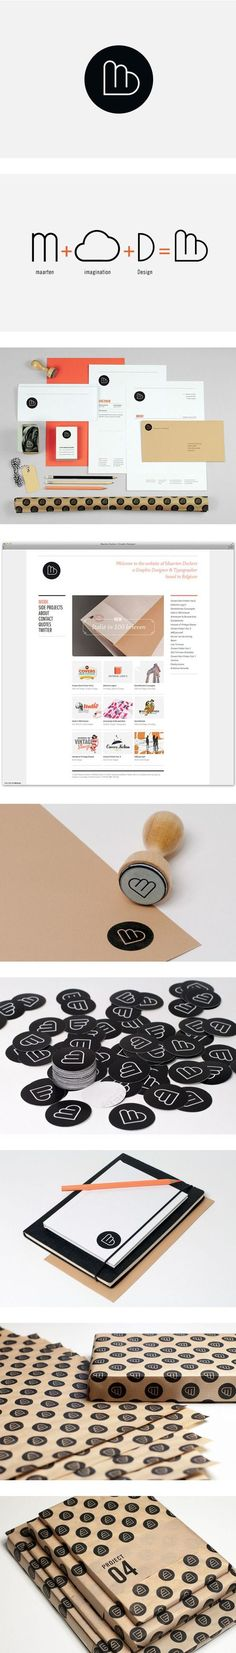 (10) Branding Maarten Deckers by Maarten Deckers | graphic design | Pinterest